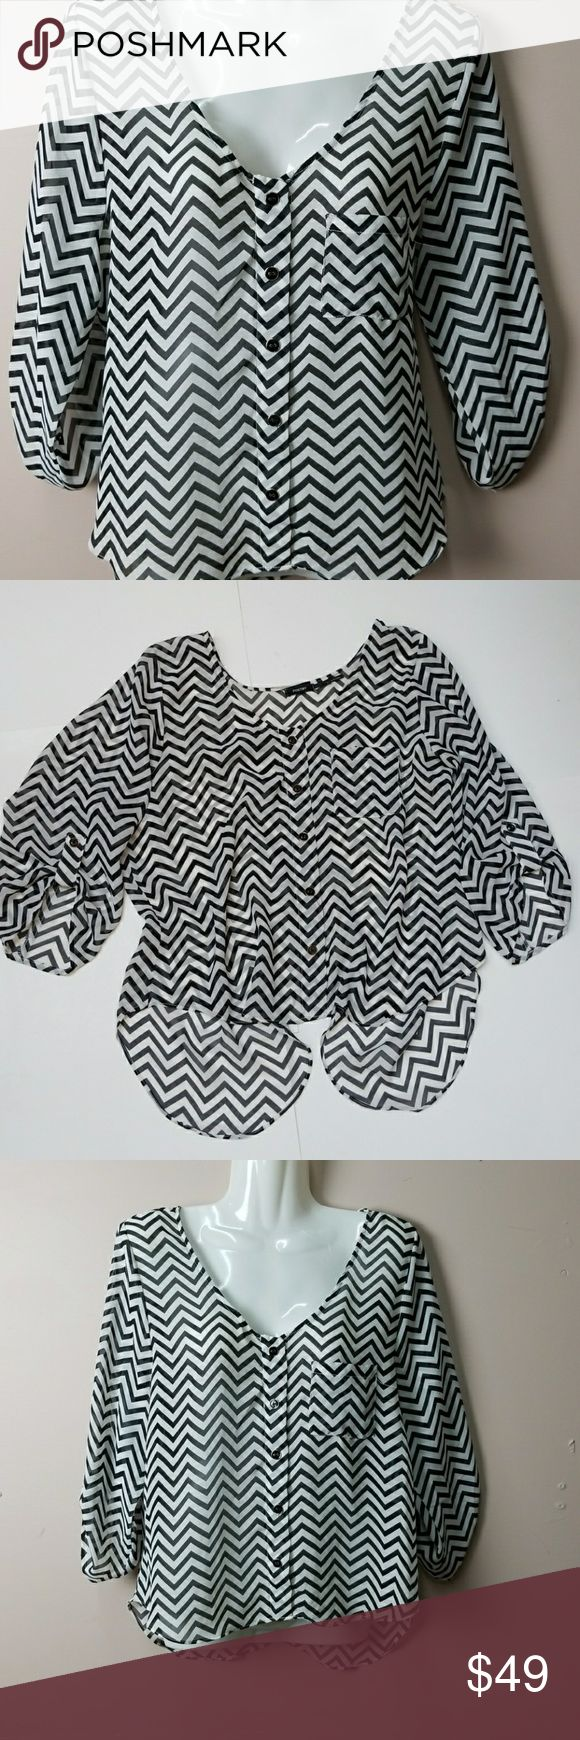 Poetry Blouse/Top Plus L Poetry Blouse/Top Plus Size L. Size L, Chevron Print, black and white, elastic sleeves, hi-lo, 3/4 length sleeves that button up, over laps in back, relaxed, loose fitting,  sheer fabric, decorative buttons down front and a pocket in front. Poetry Tops Blouses